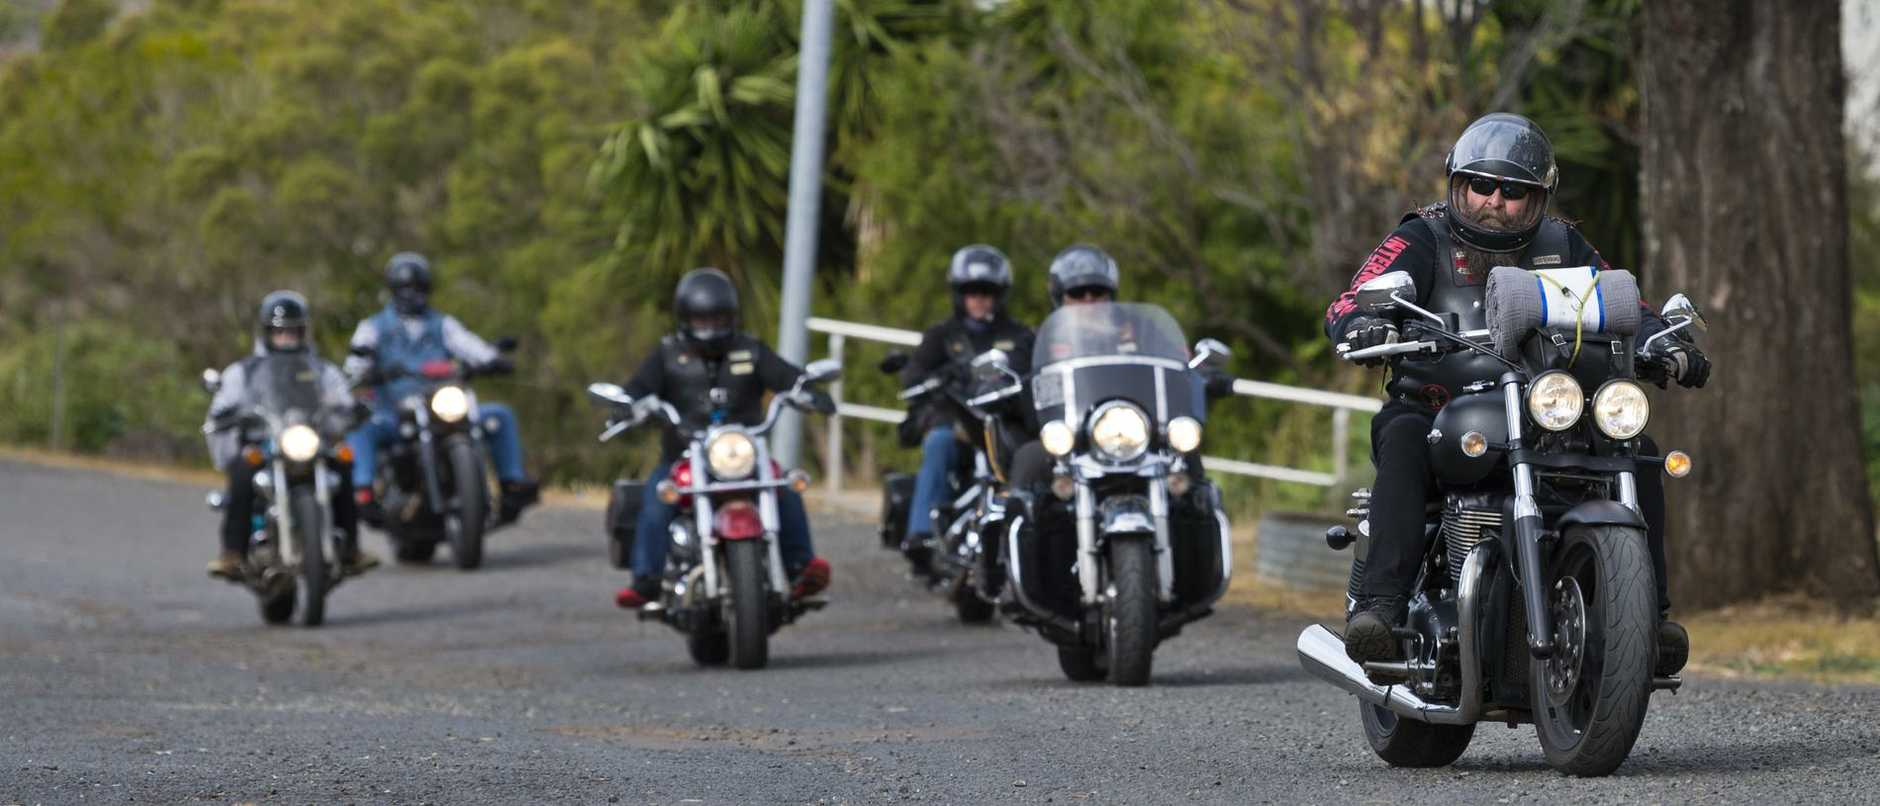 Members of God's Squad CMC deliver blankets for the 2020 Huggie Bear Memorial Toowoomba Blanket Run organised by Downs Motorcycle Sporting Club under coronavirus restrictions, Sunday, May 31, 2020. Picture: Kevin Farmer